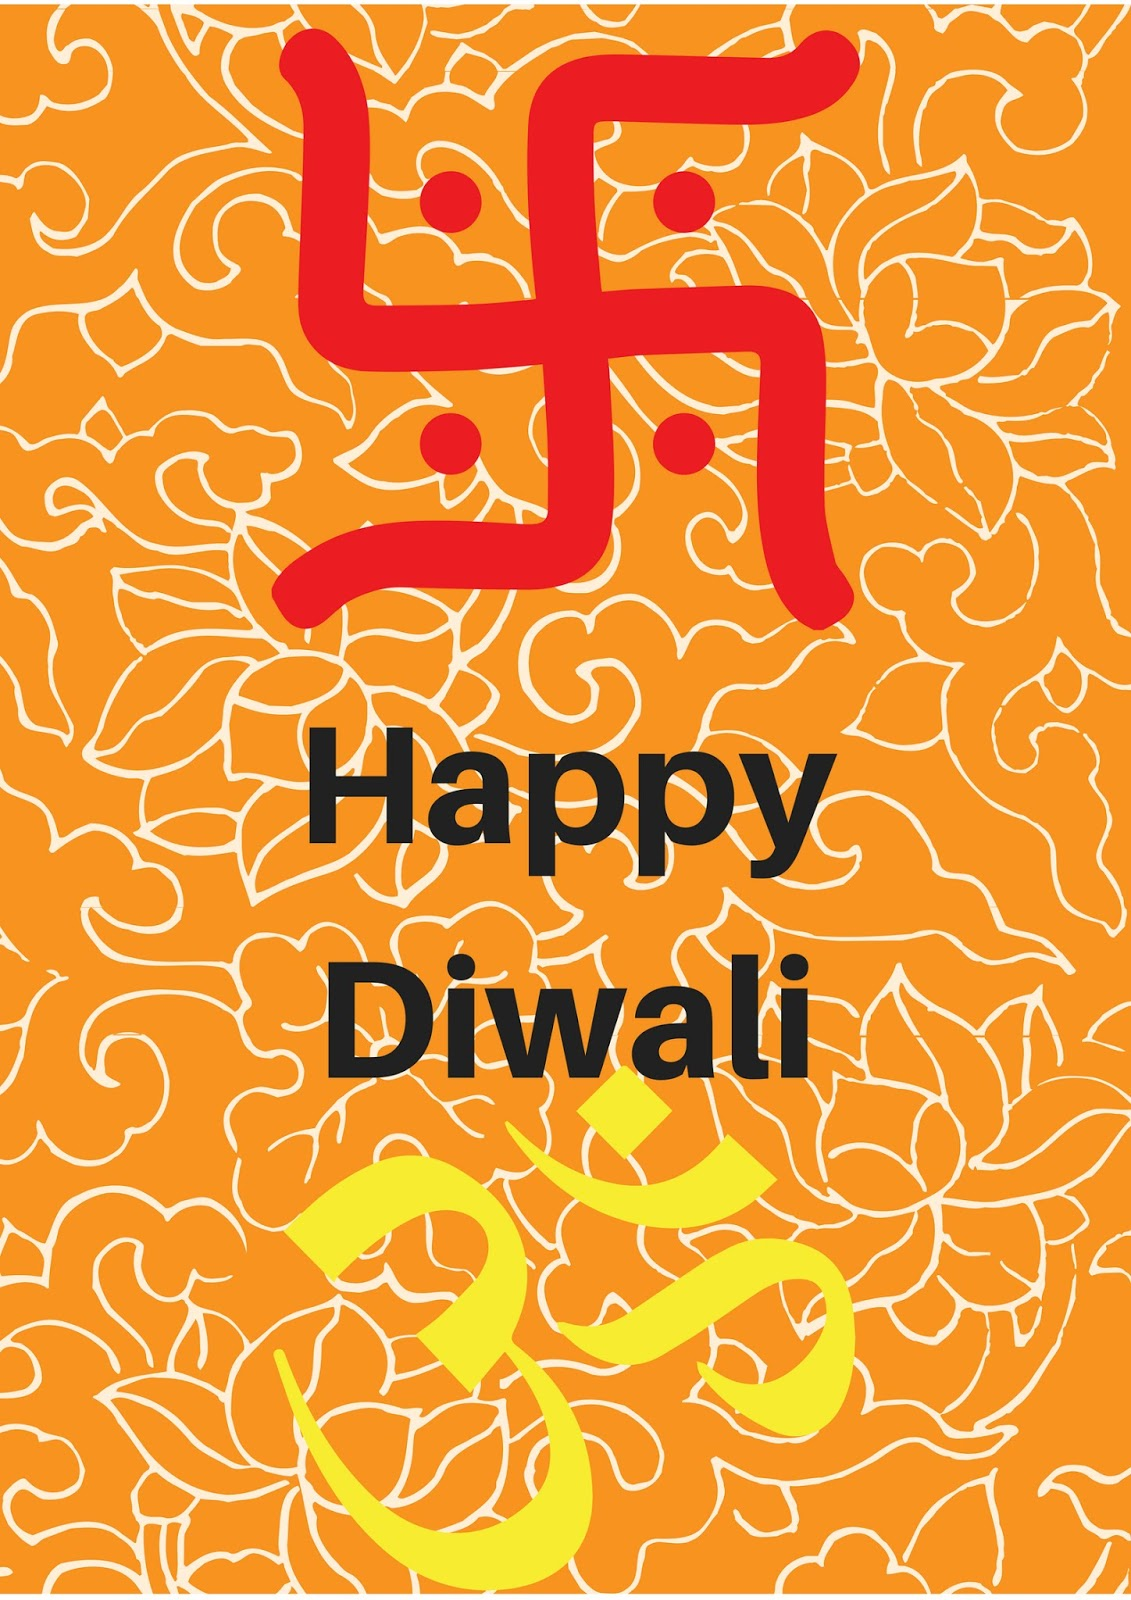 Happy Diwali Wishes And Quotes Happy Diwali 2018 Happy Diwali